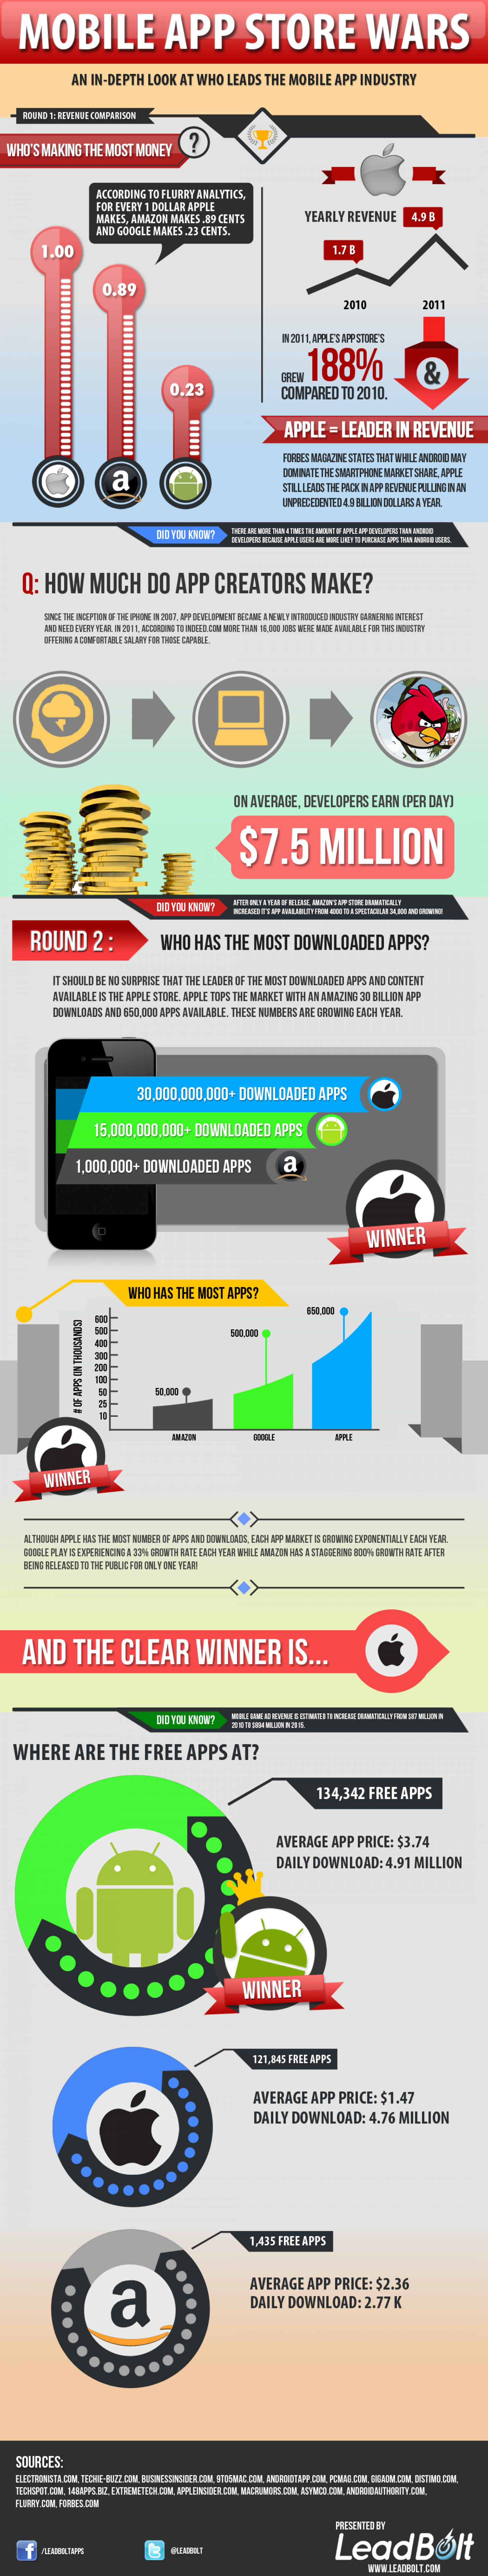 Mobile App Store Wars: The saga continues… to become a leader in the app world. [Infographic] Infographic